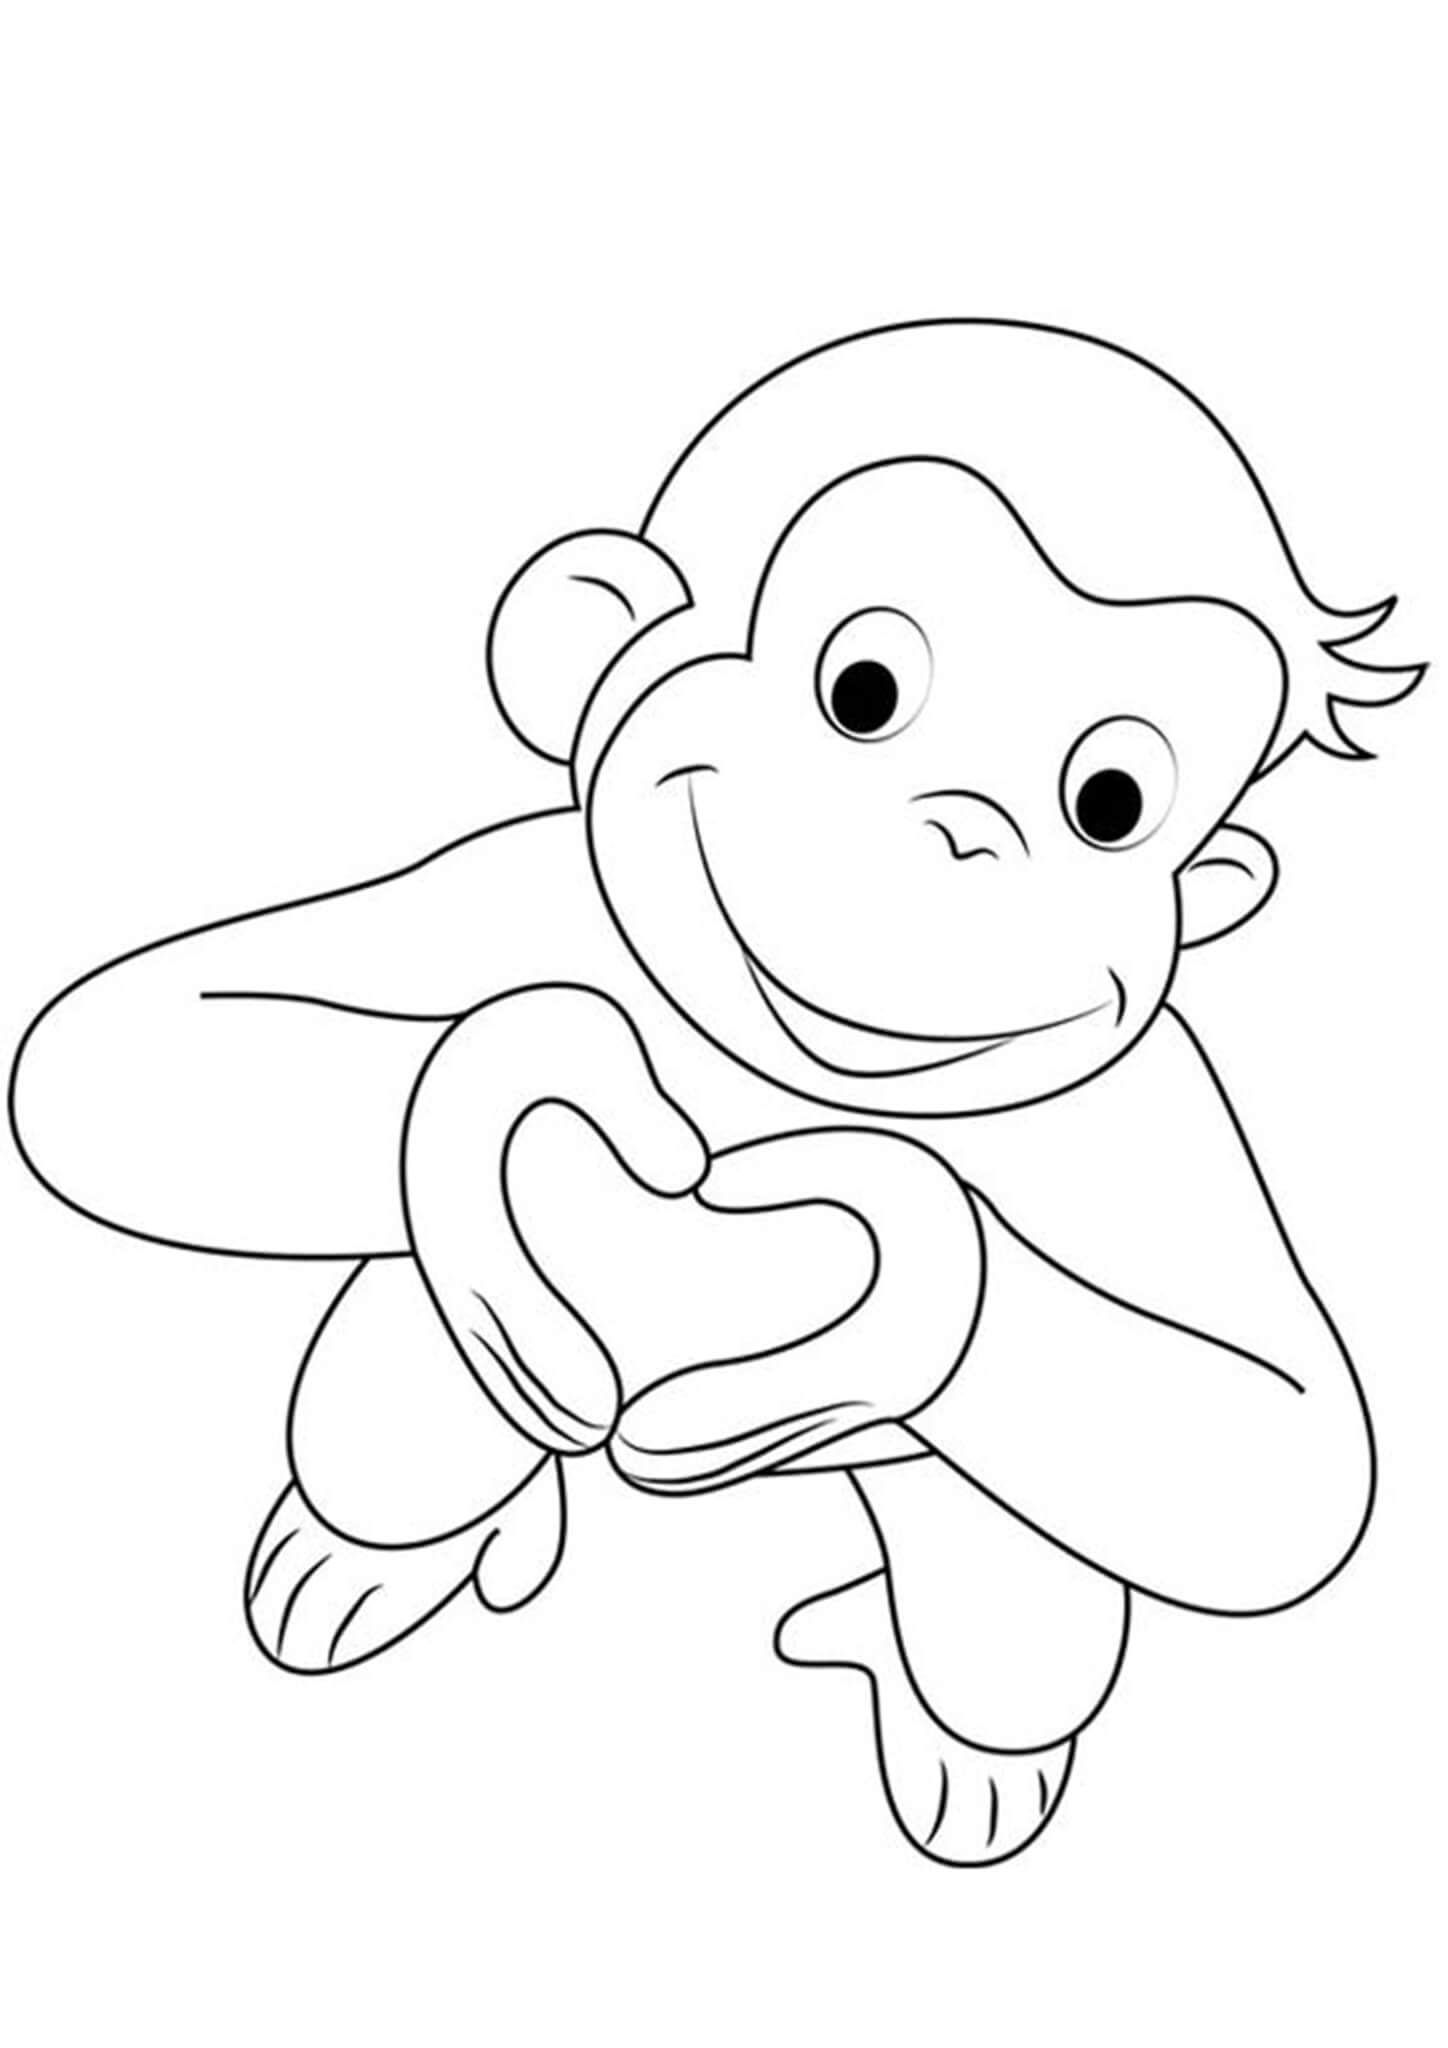 Free Easy To Print Curious George Coloring Pages In 2021 Curious George Coloring Pages Monkey Coloring Pages Valentines Day Coloring Page